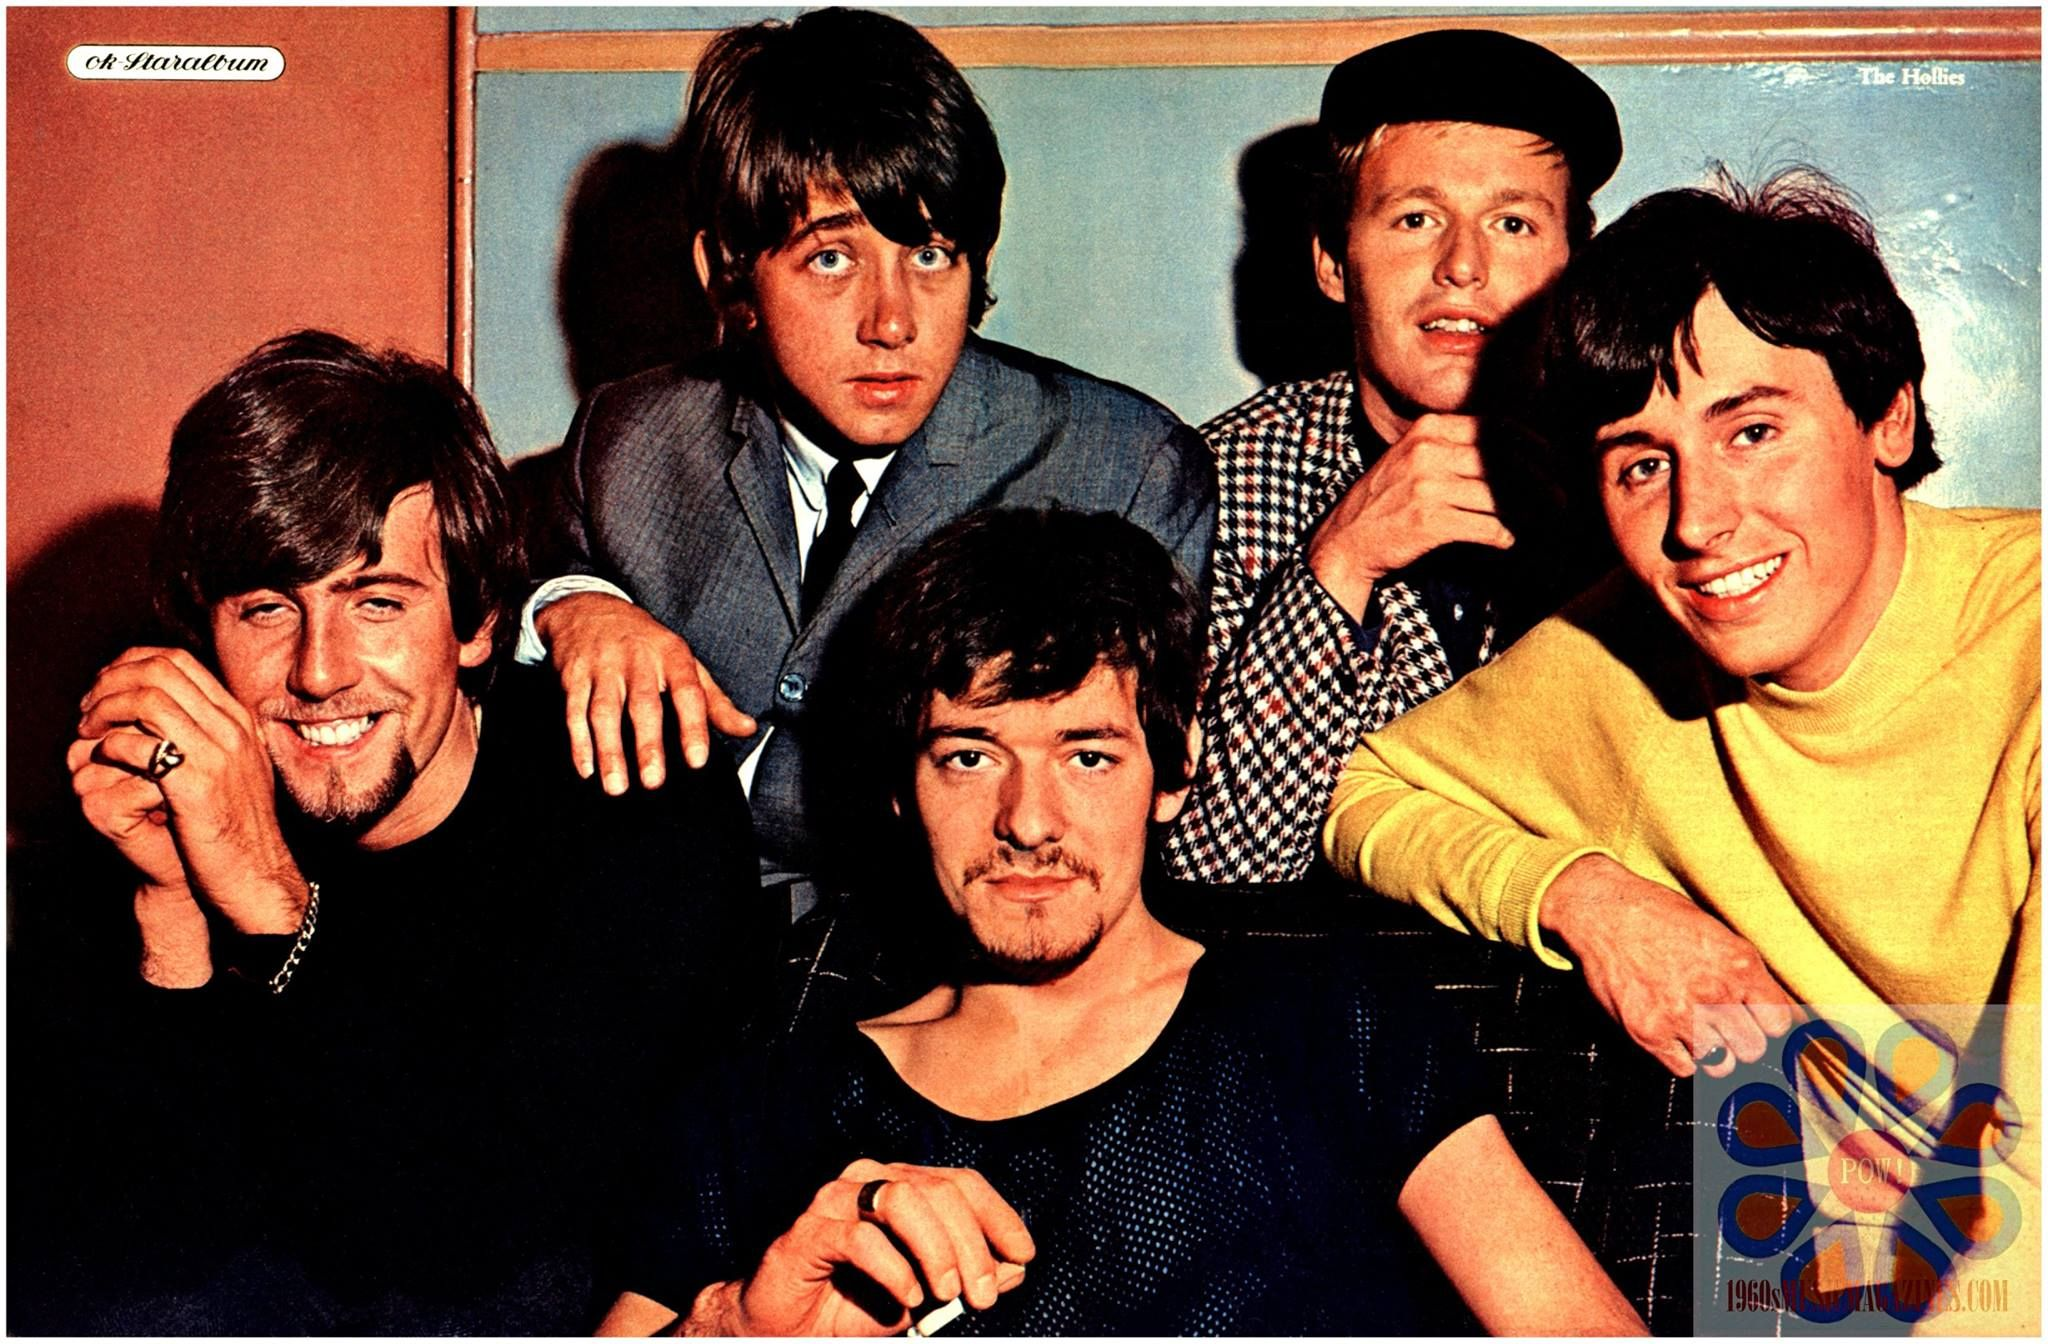 The Hollies | The hollies, Singer, People